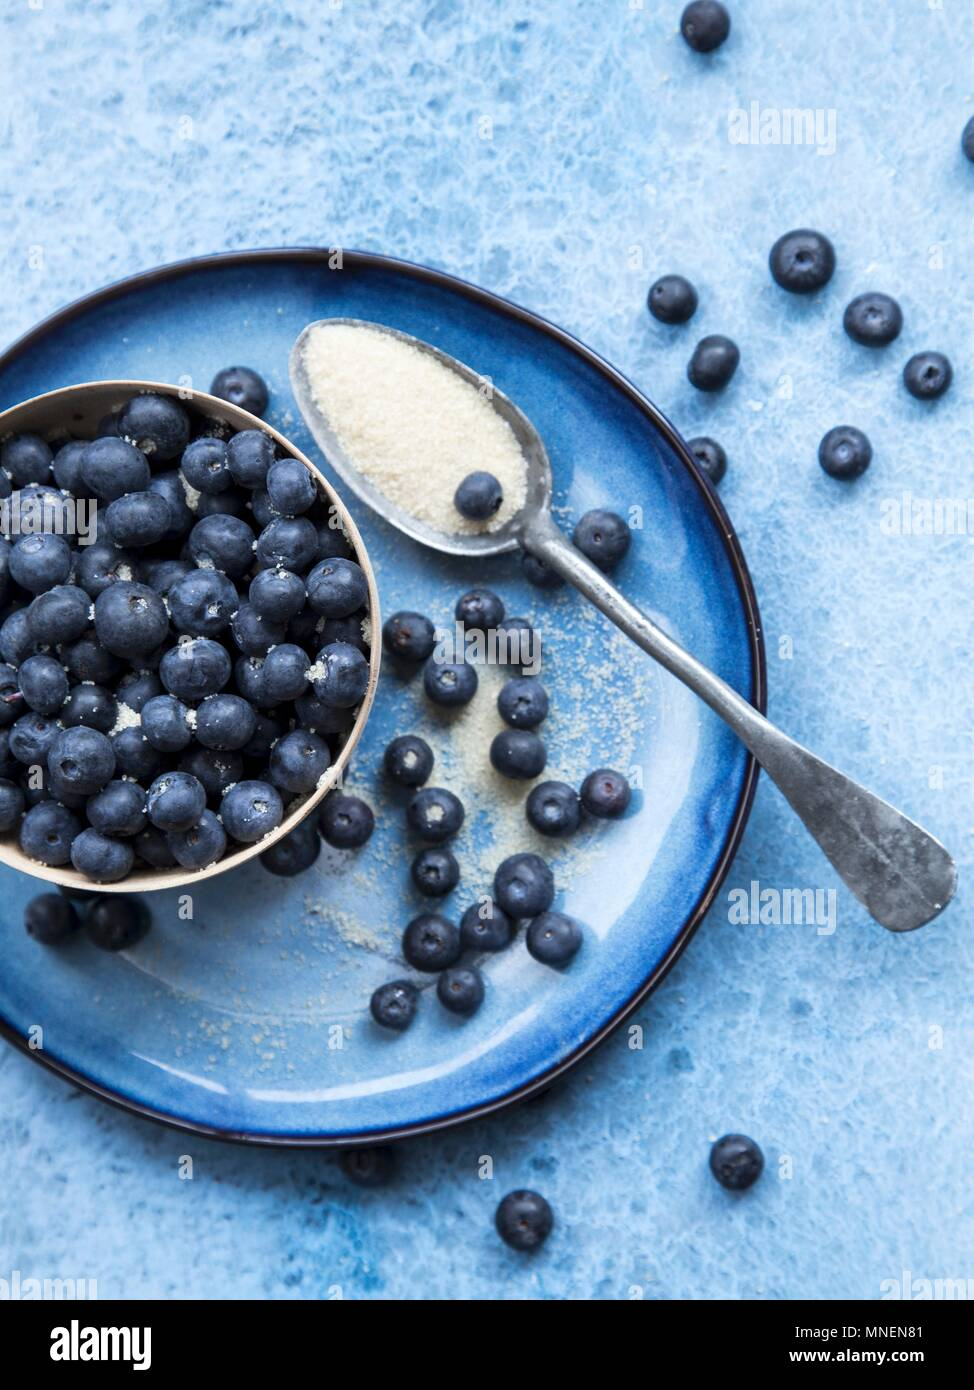 Blueberries with sugar - Stock Image